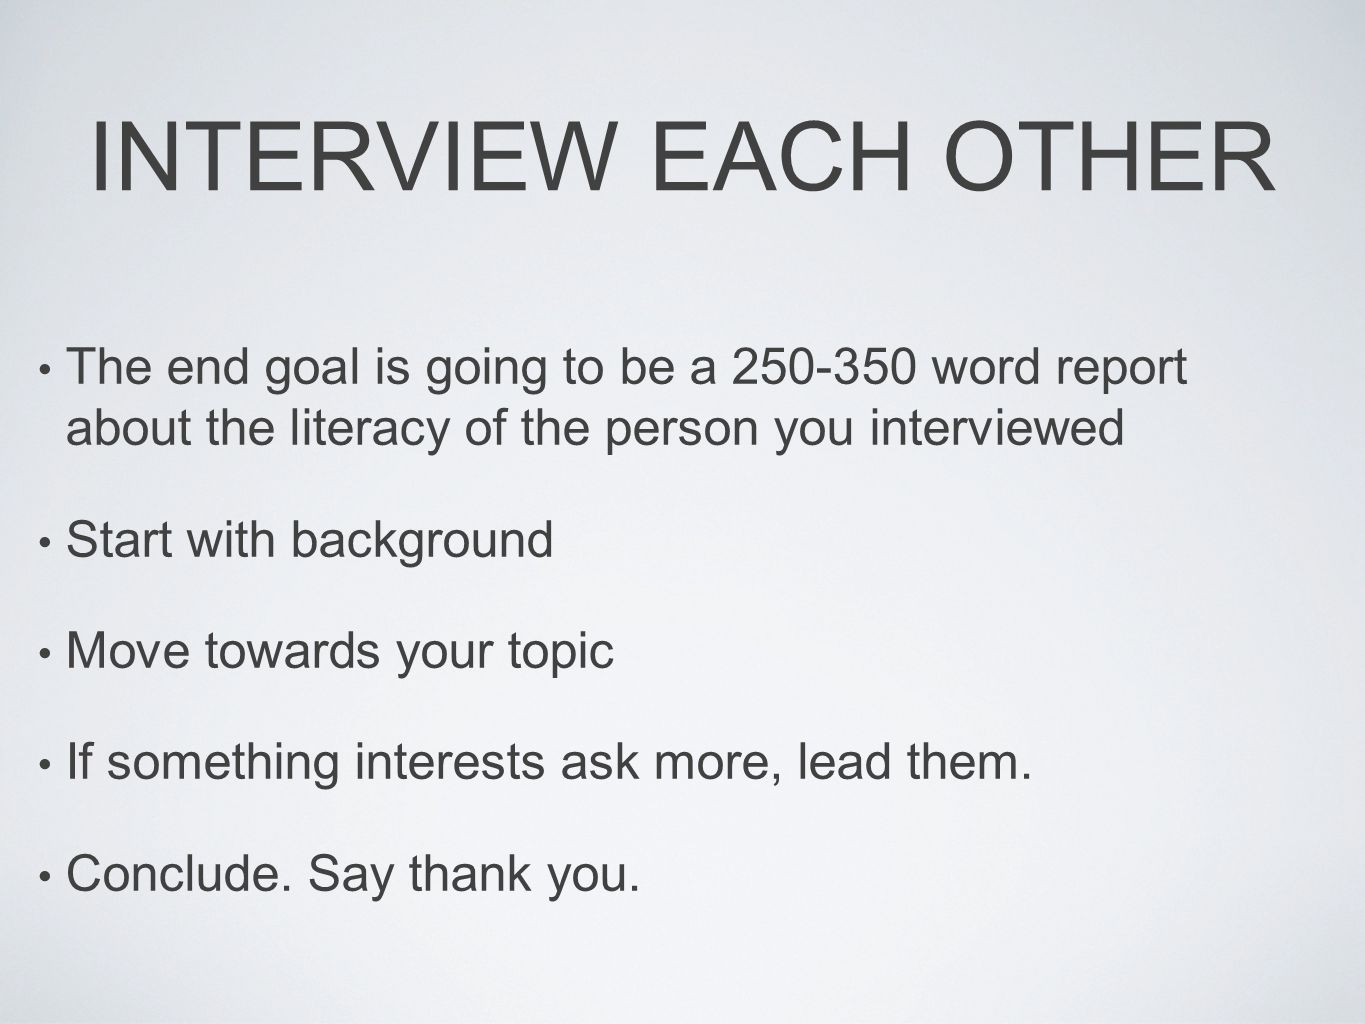 INTERVIEW EACH OTHER The end goal is going to be a 250-350 word report about the literacy of the person you interviewed Start with background Move towards your topic If something interests ask more, lead them.